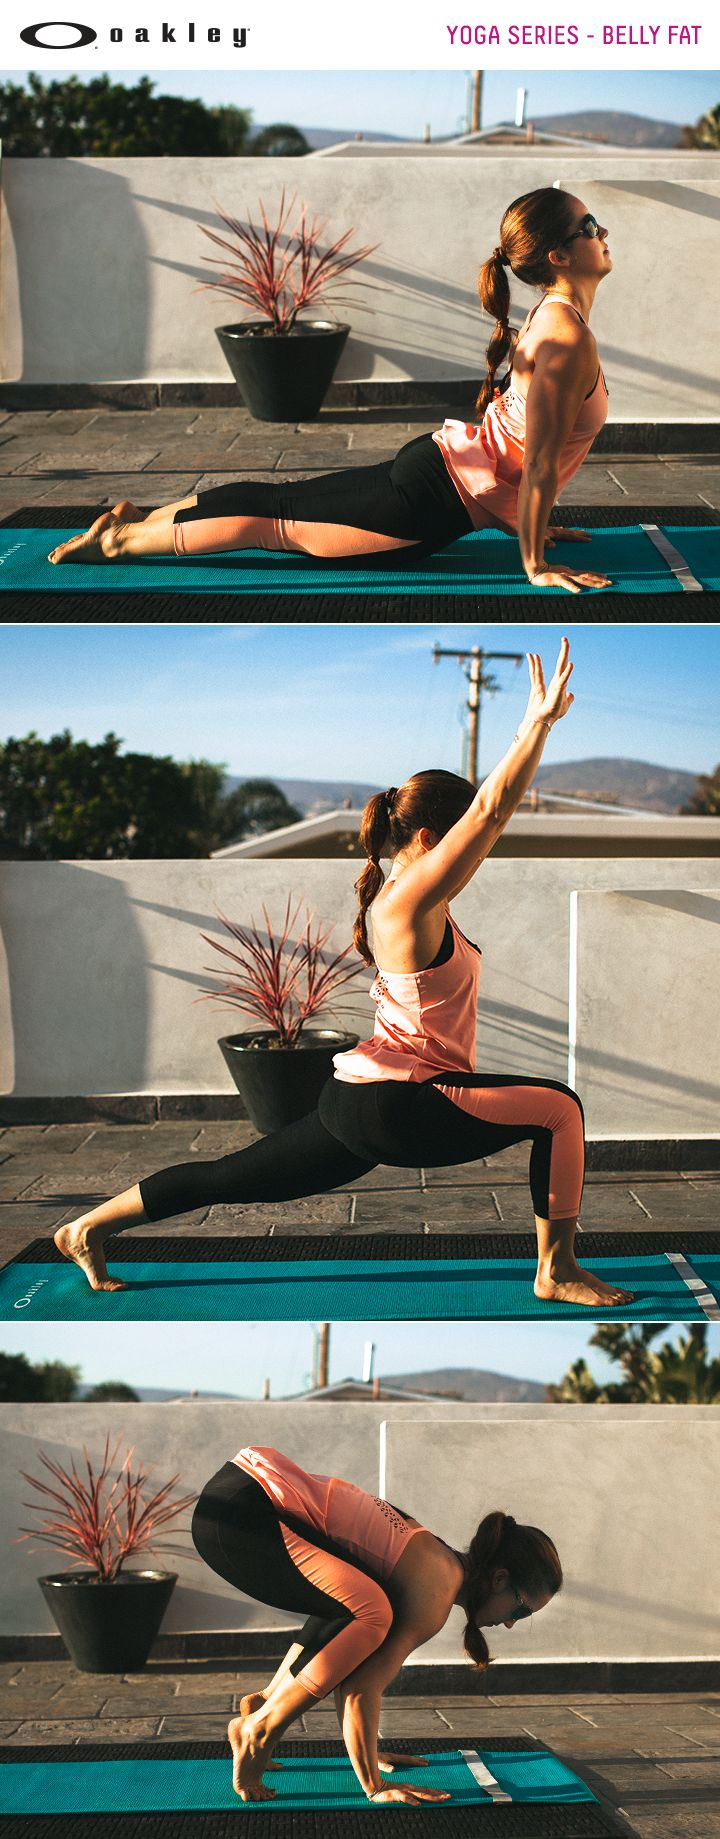 Strengthen your core with these yoga moves for targeting belly fat. Video Yoga series. National Yoga Month